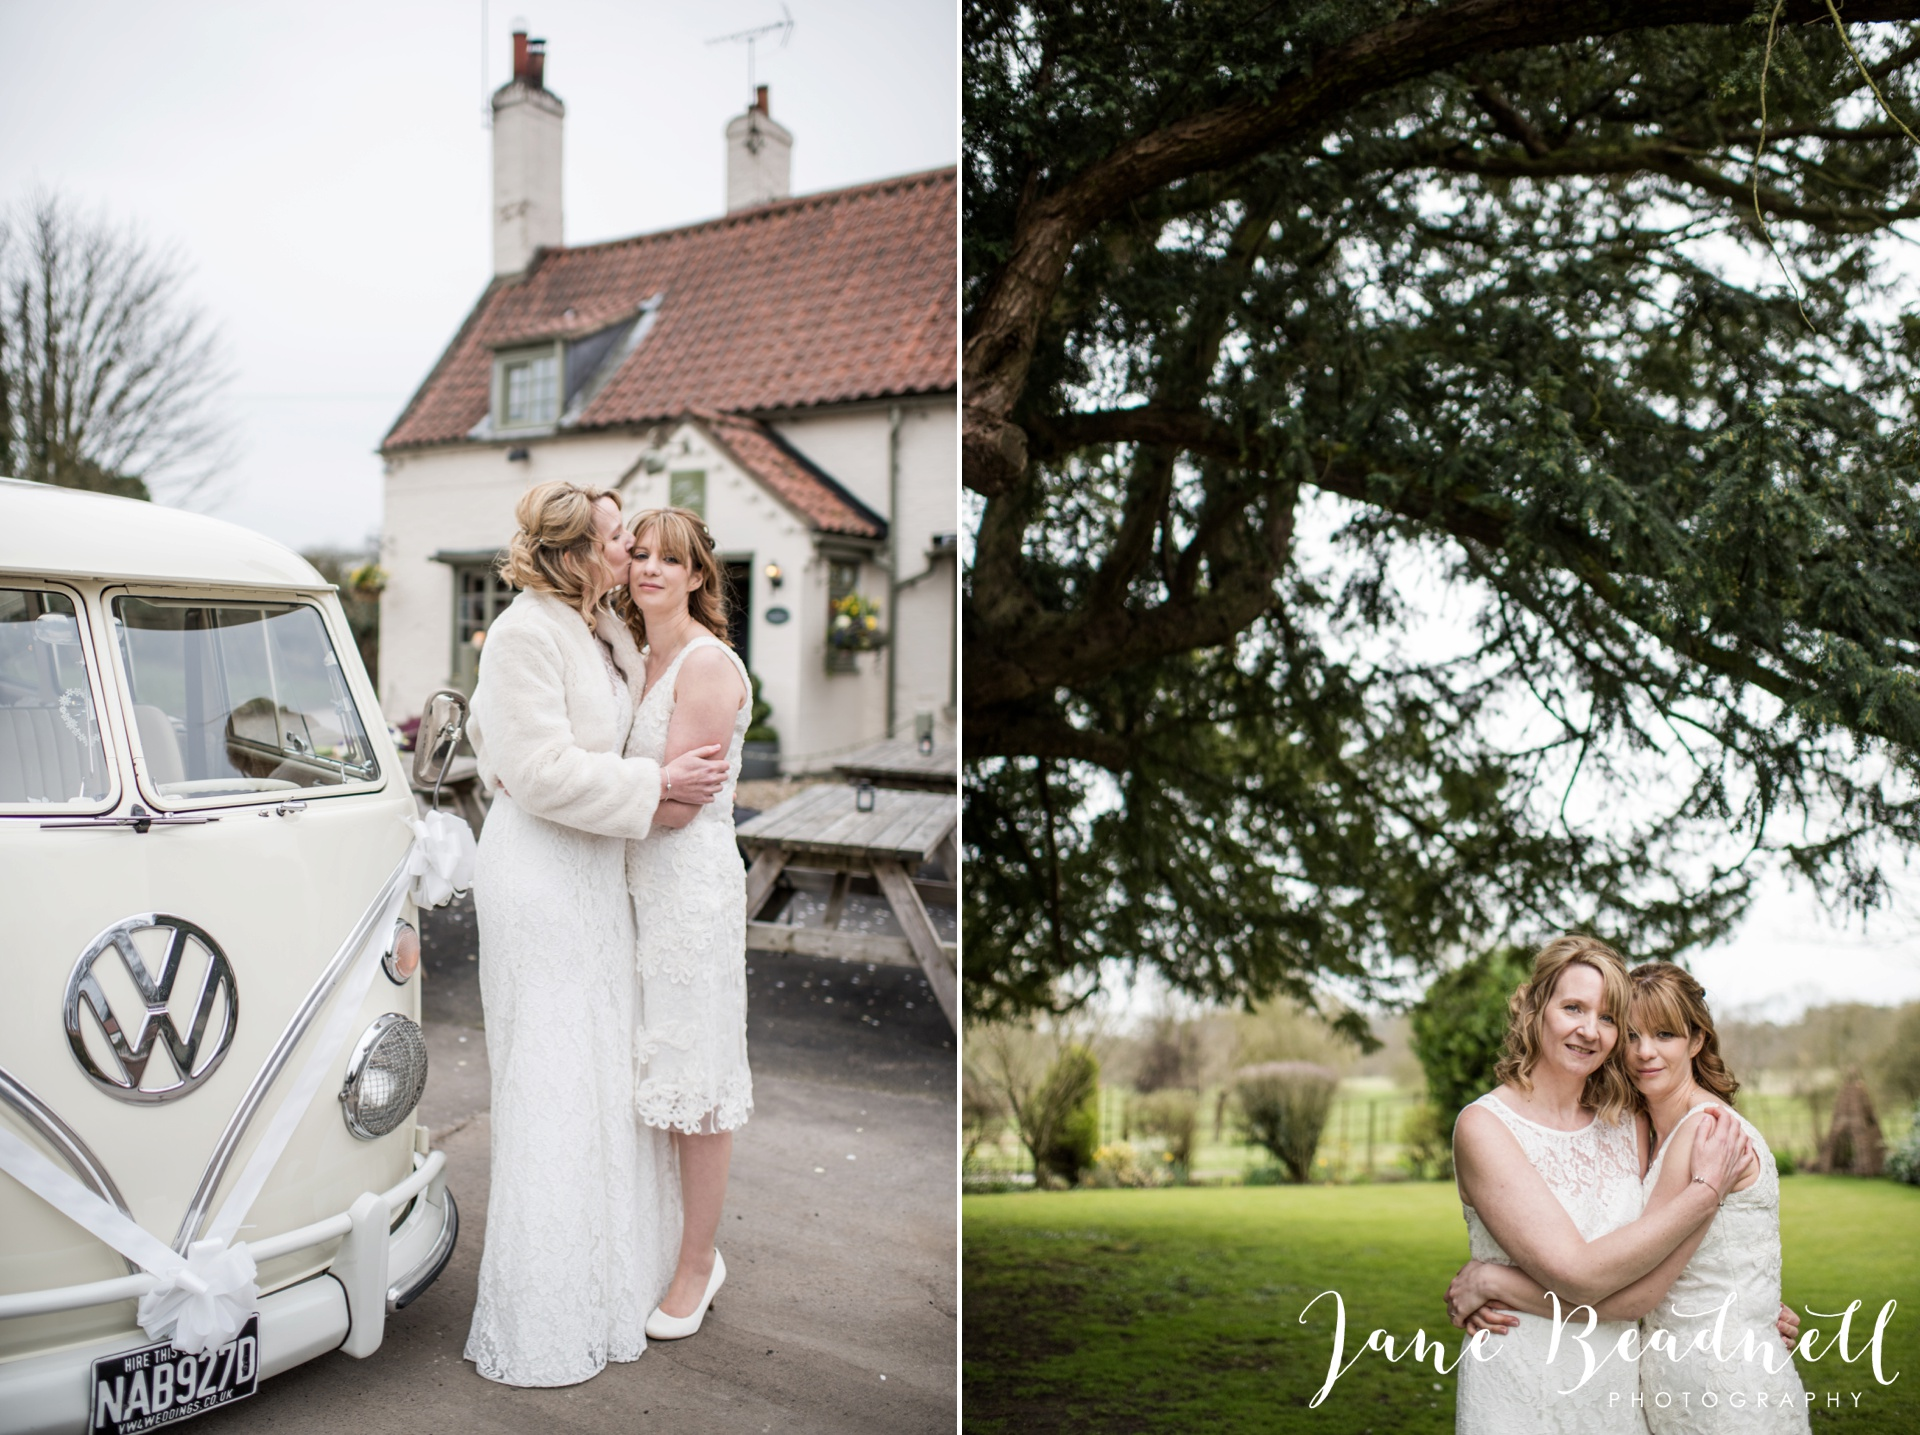 Burnby Hall Gardens wedding photography by Jane Beadnell Photography_0012